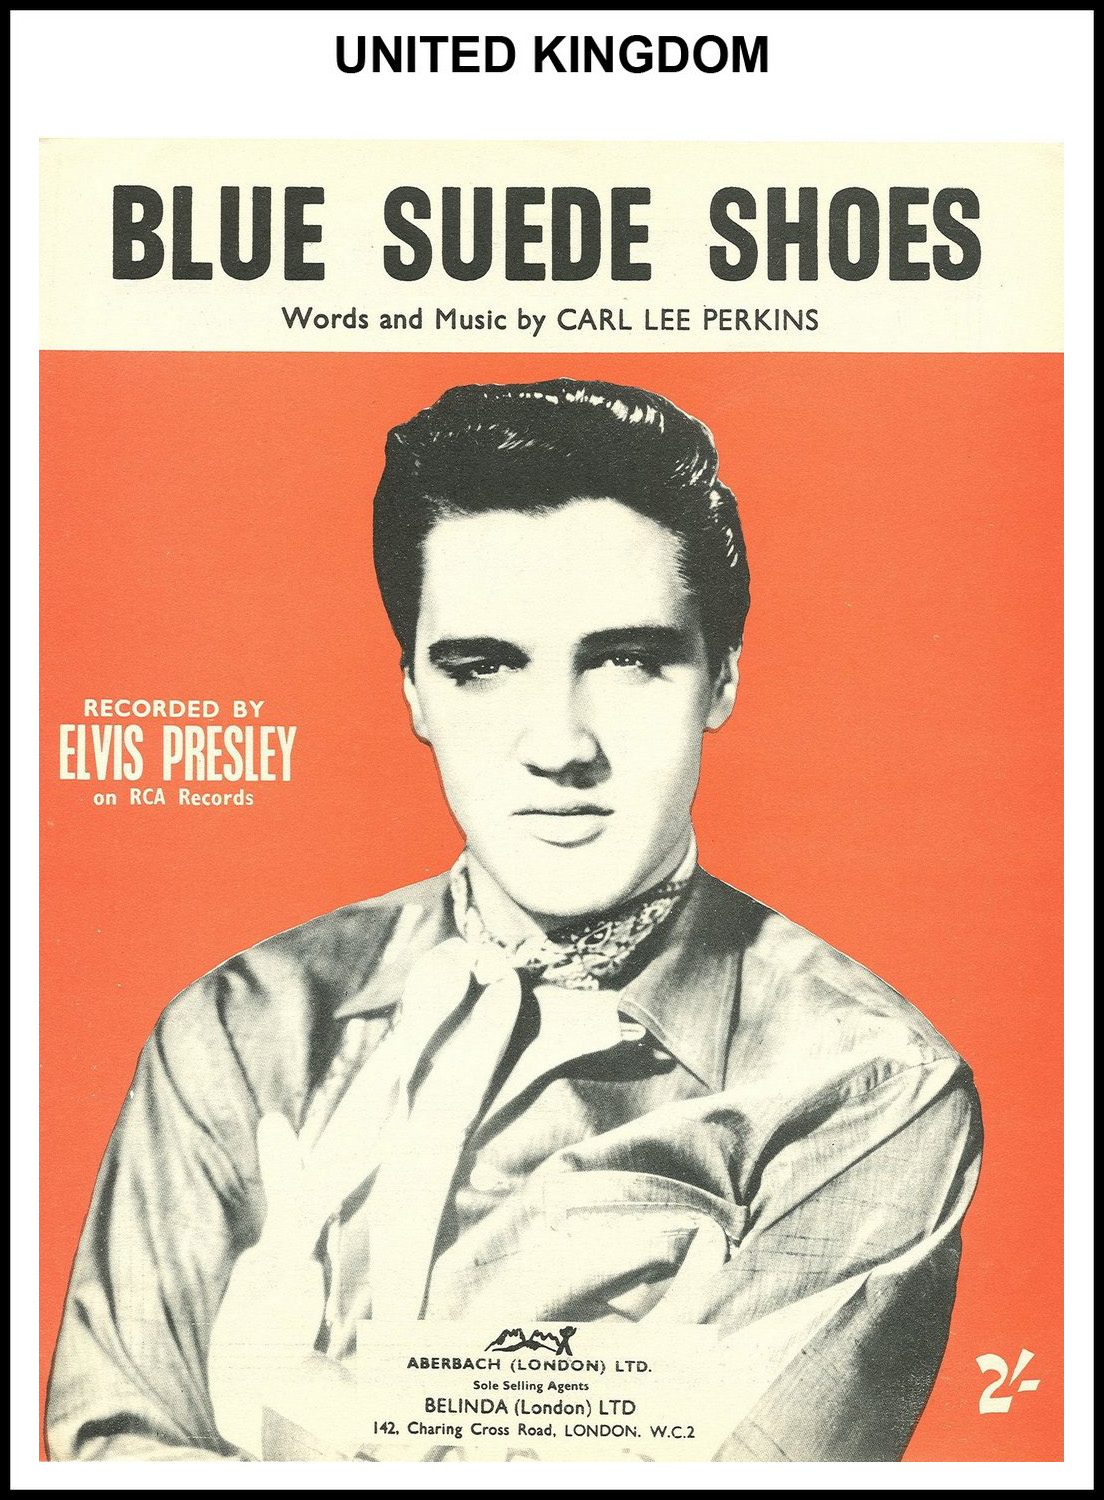 1956 - Blue Suede Shoes (UK) (CHRIS GILES COLLECTION)